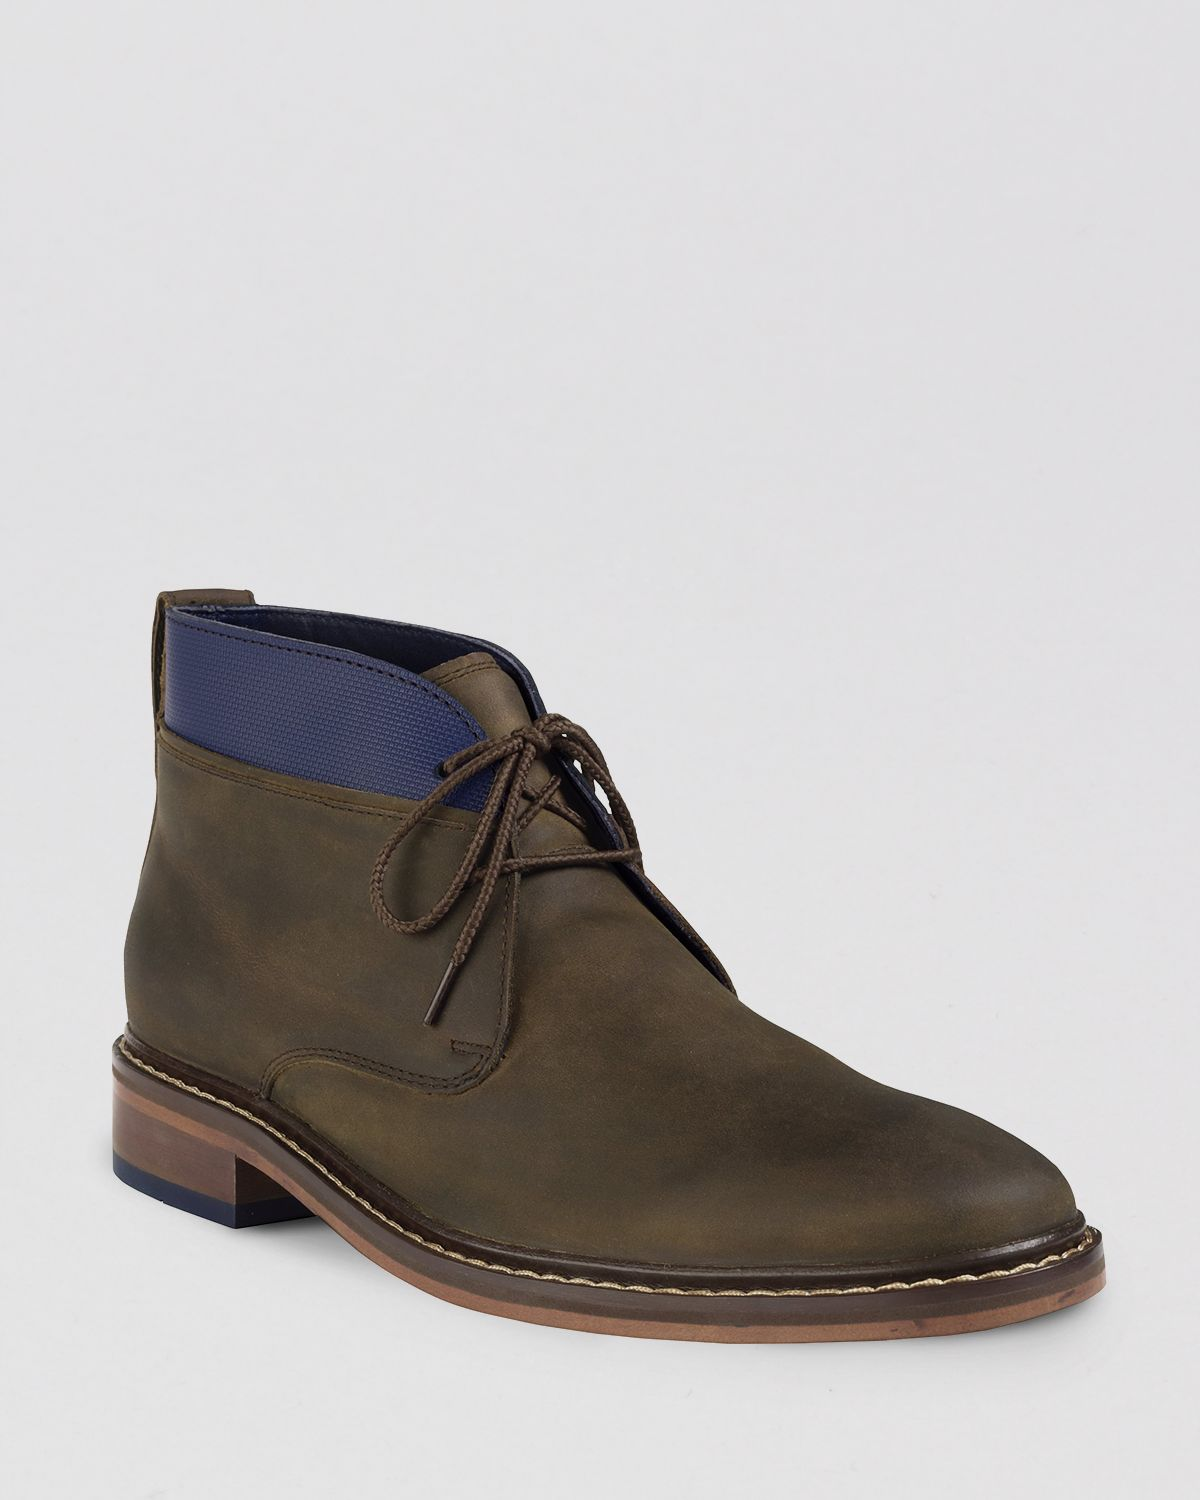 Cole Haan Waterproof Shoes Sale